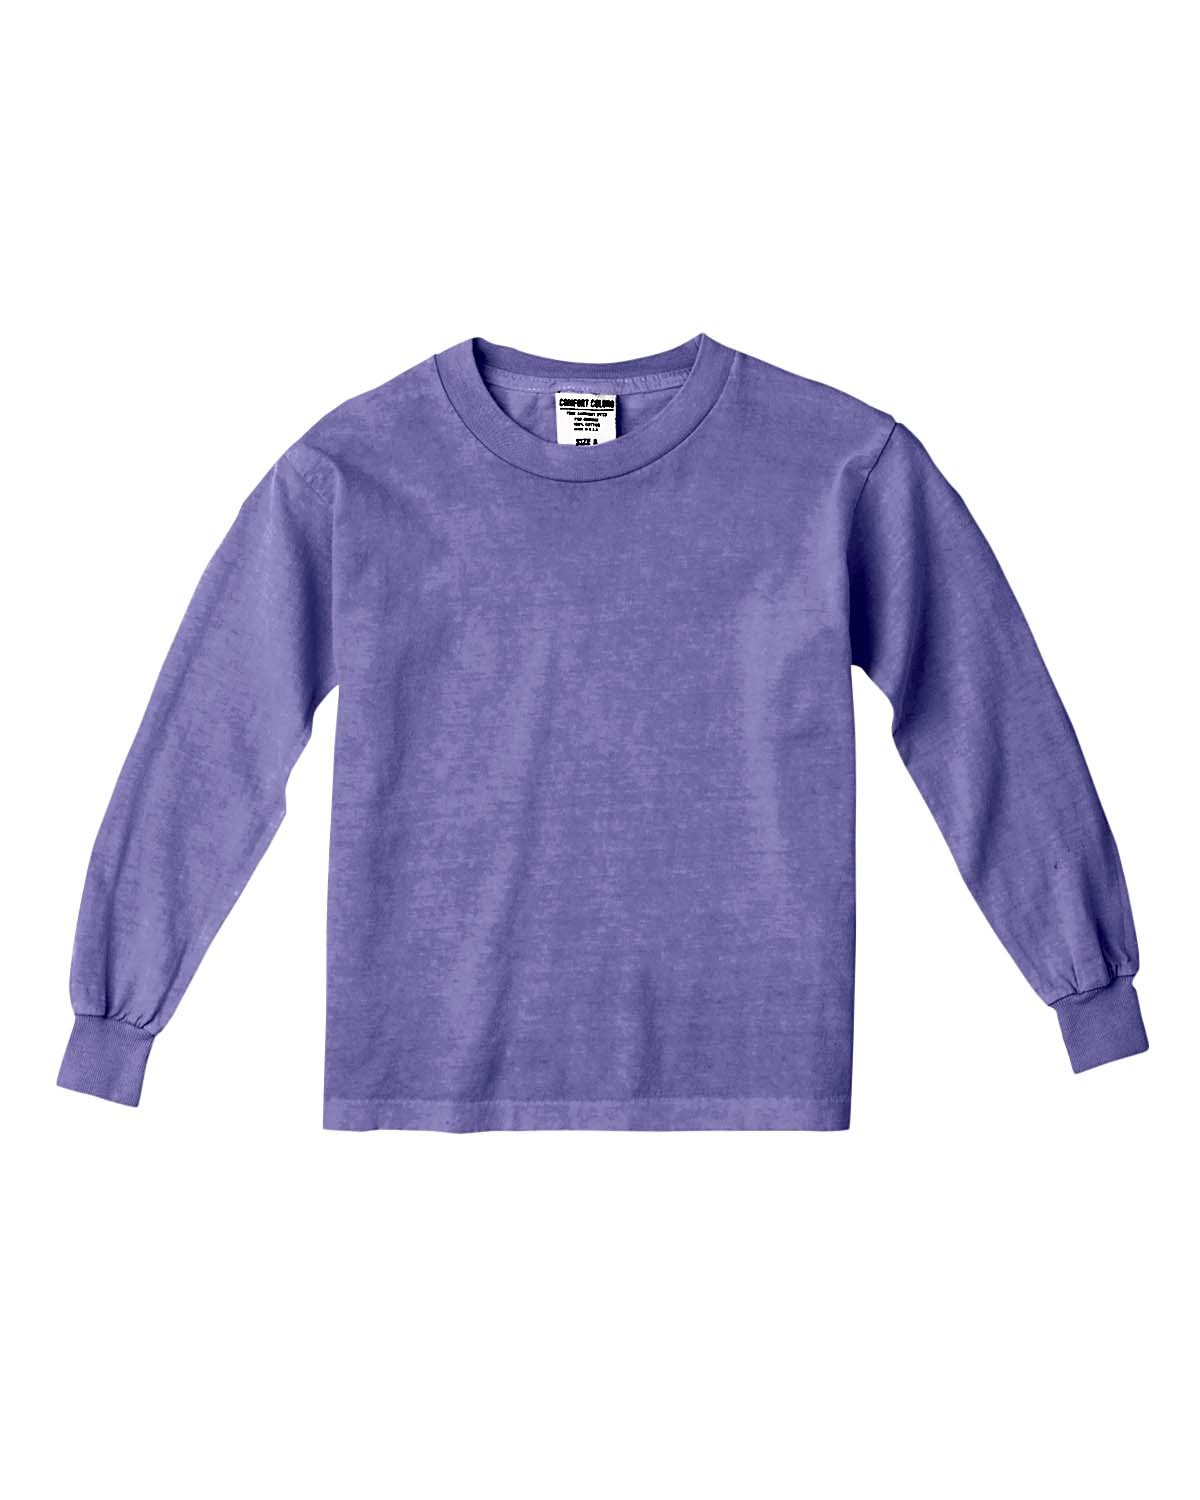 C3483 Comfort Colors Drop Ship VIOLET